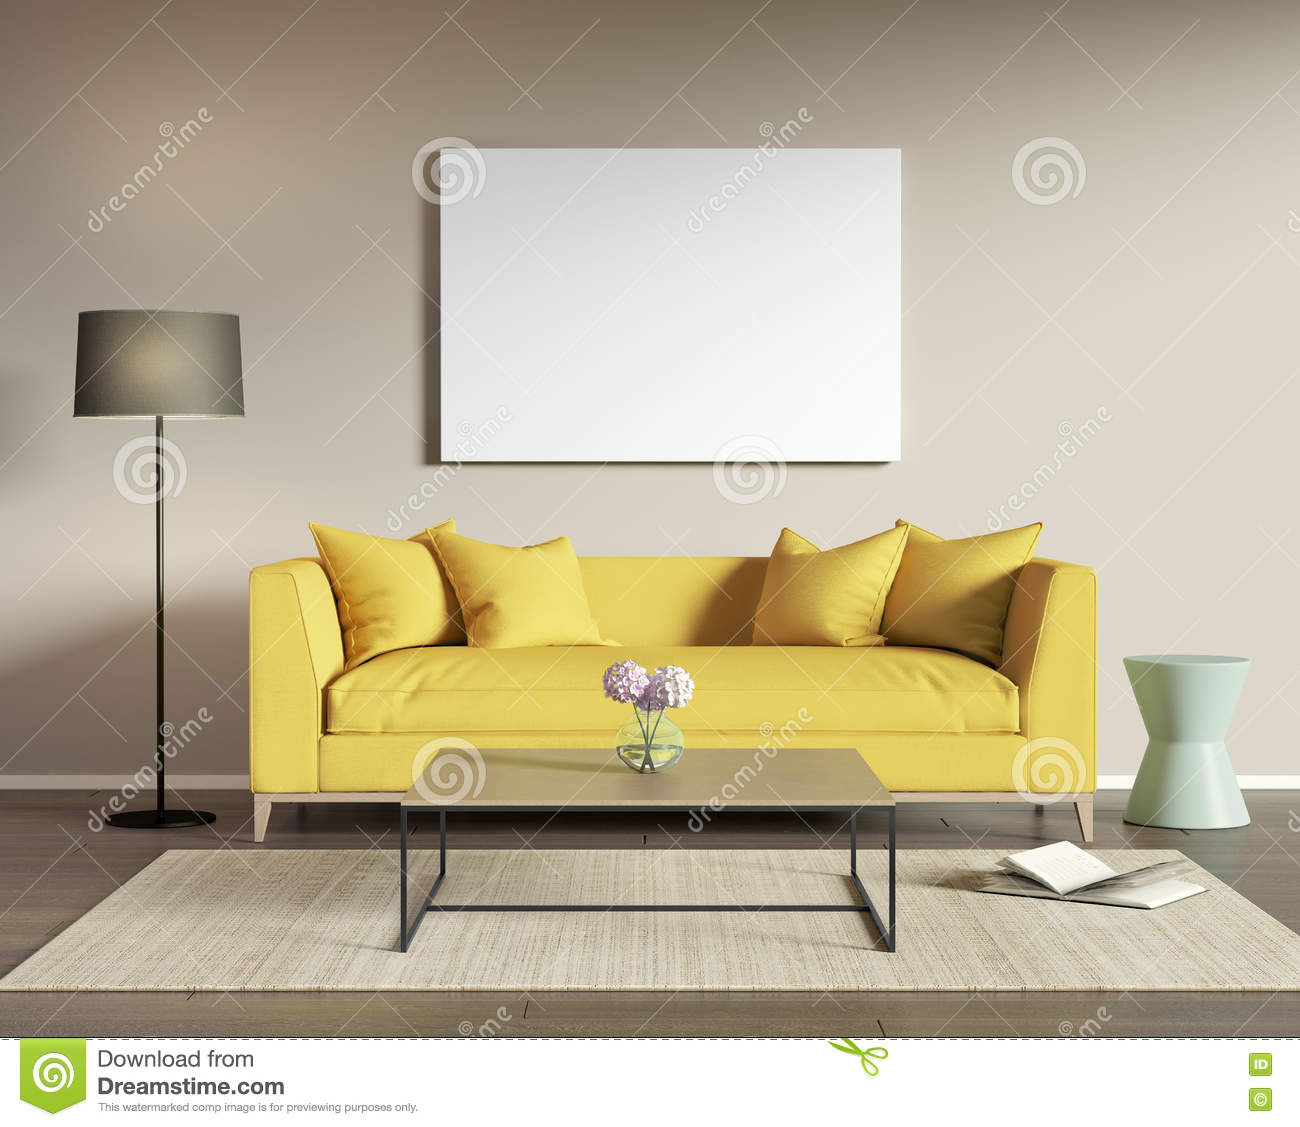 Yellow Sofa In A Modern Living Room